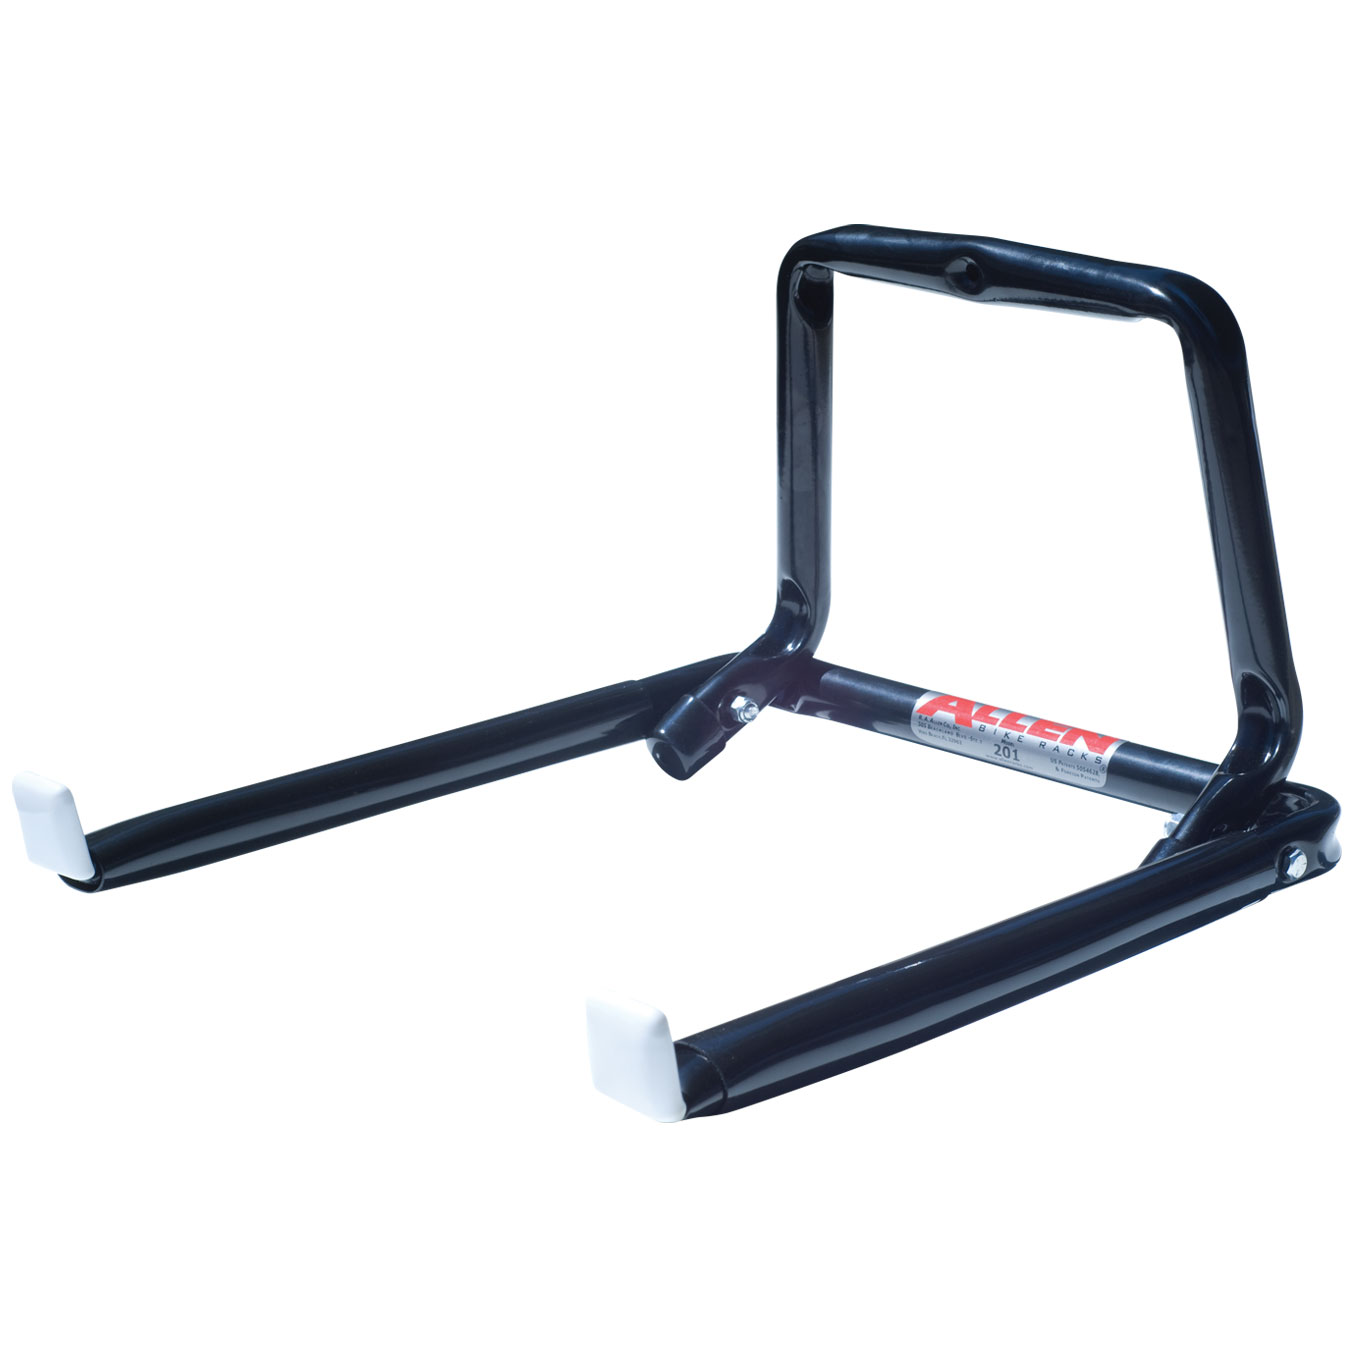 Allen Sports Wall Mounted Folding Bicycle Storage Rack